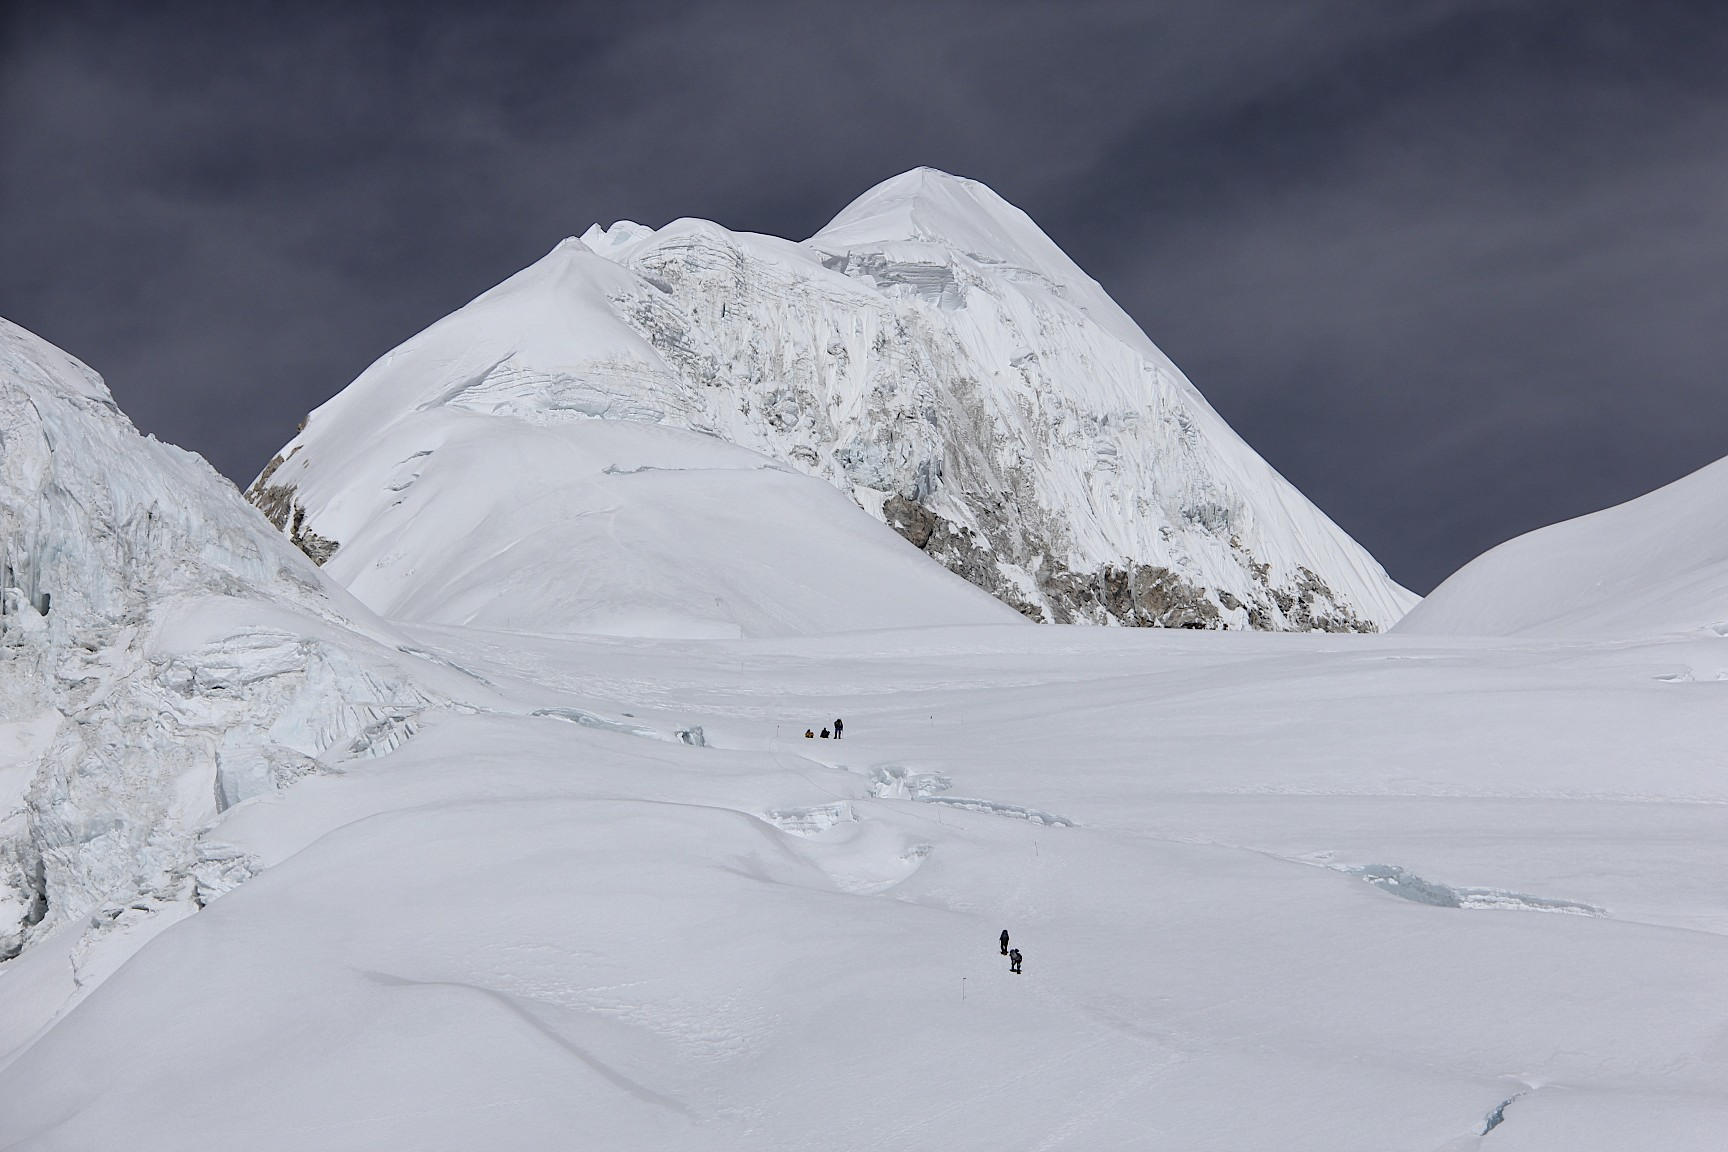 Baruntse and the trail to the top - it seems so close (it is not!)